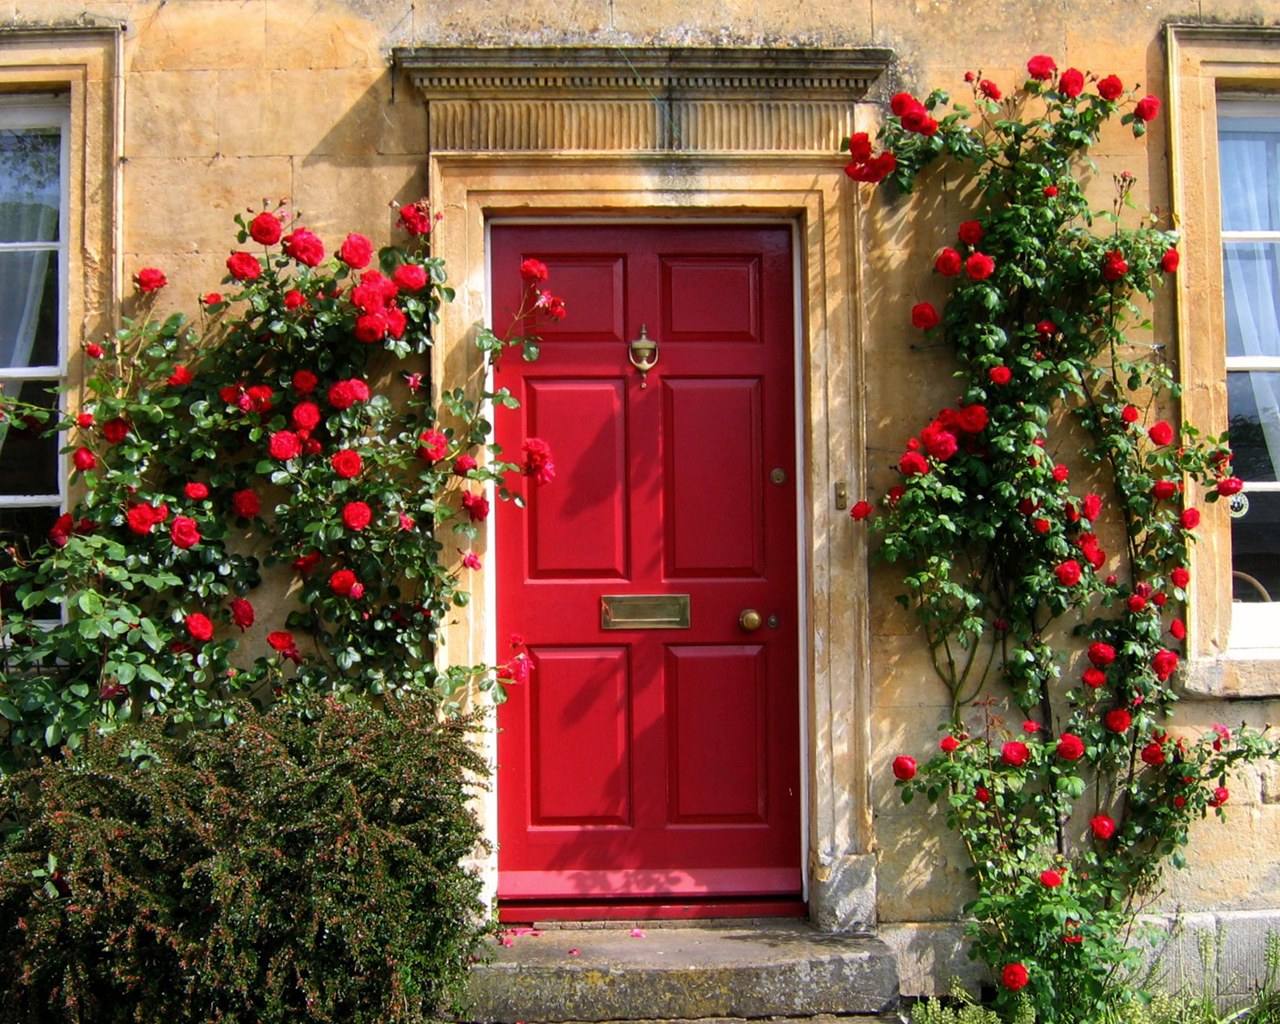 Red door in the cotswolds o 1280x1024 desktop for Wallpaper for home entrance